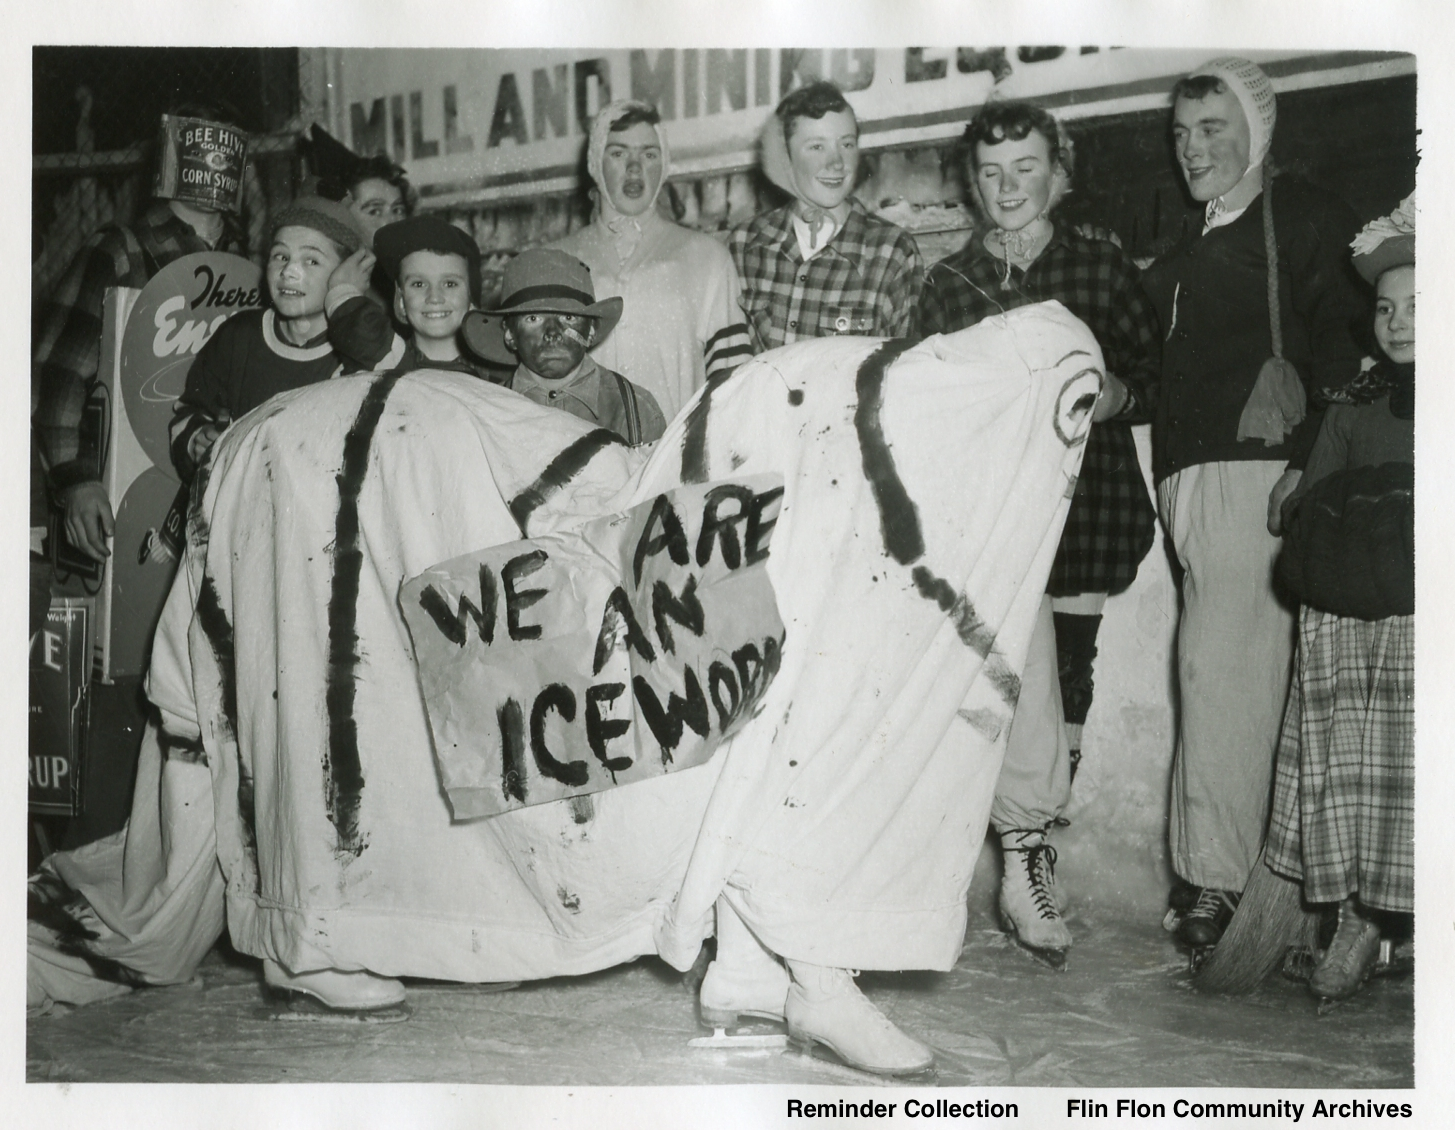 Iceworm Project, 1960s